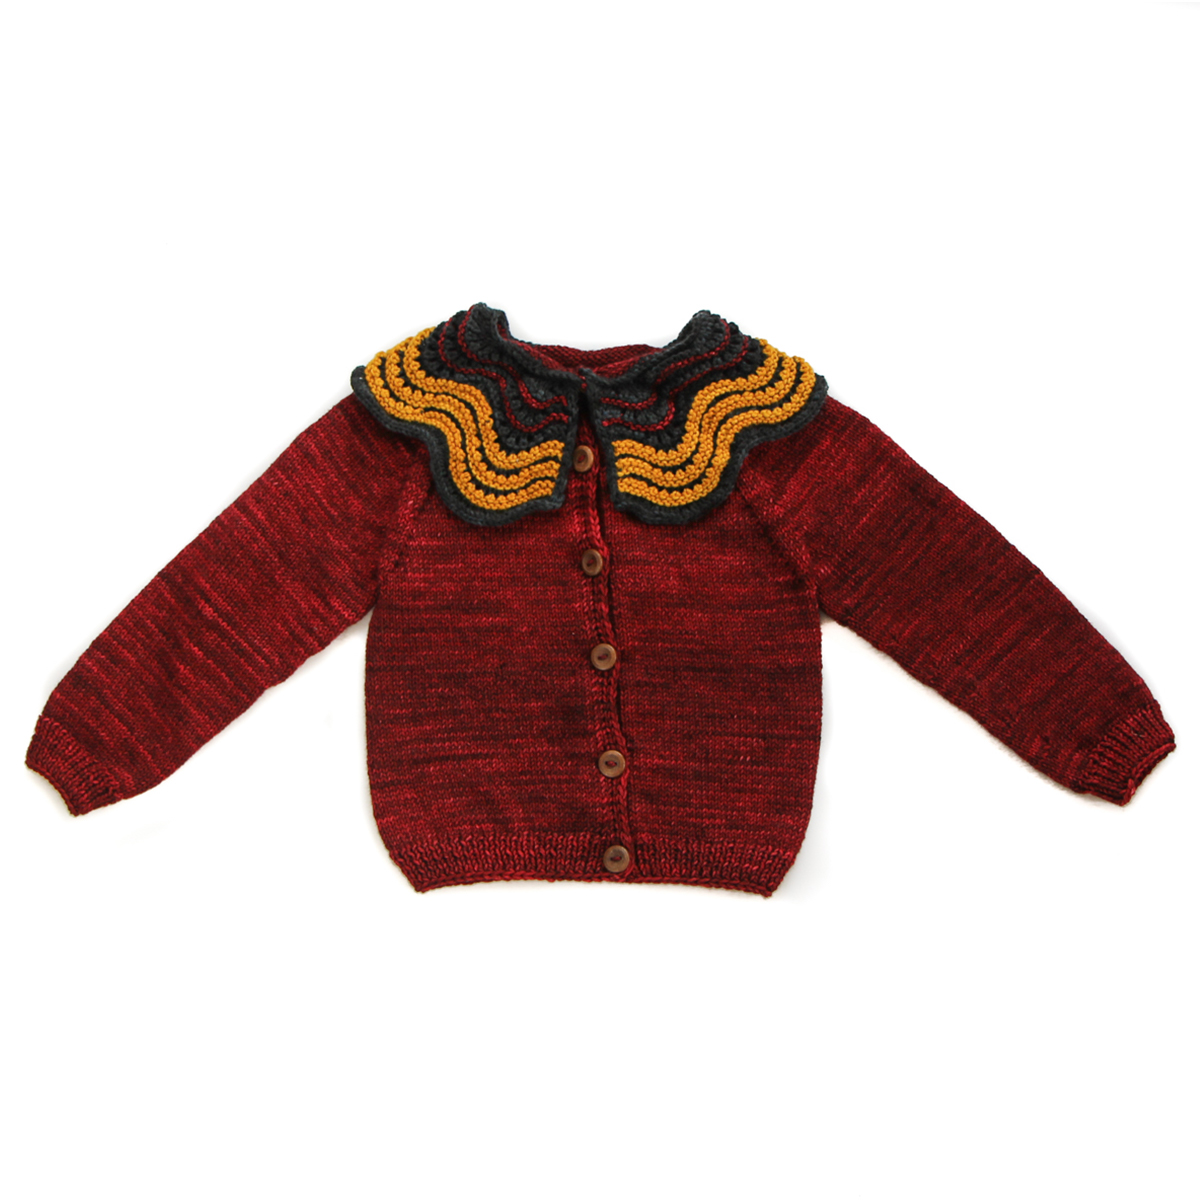 Kalinka Butterfly Cardigan in Cherry